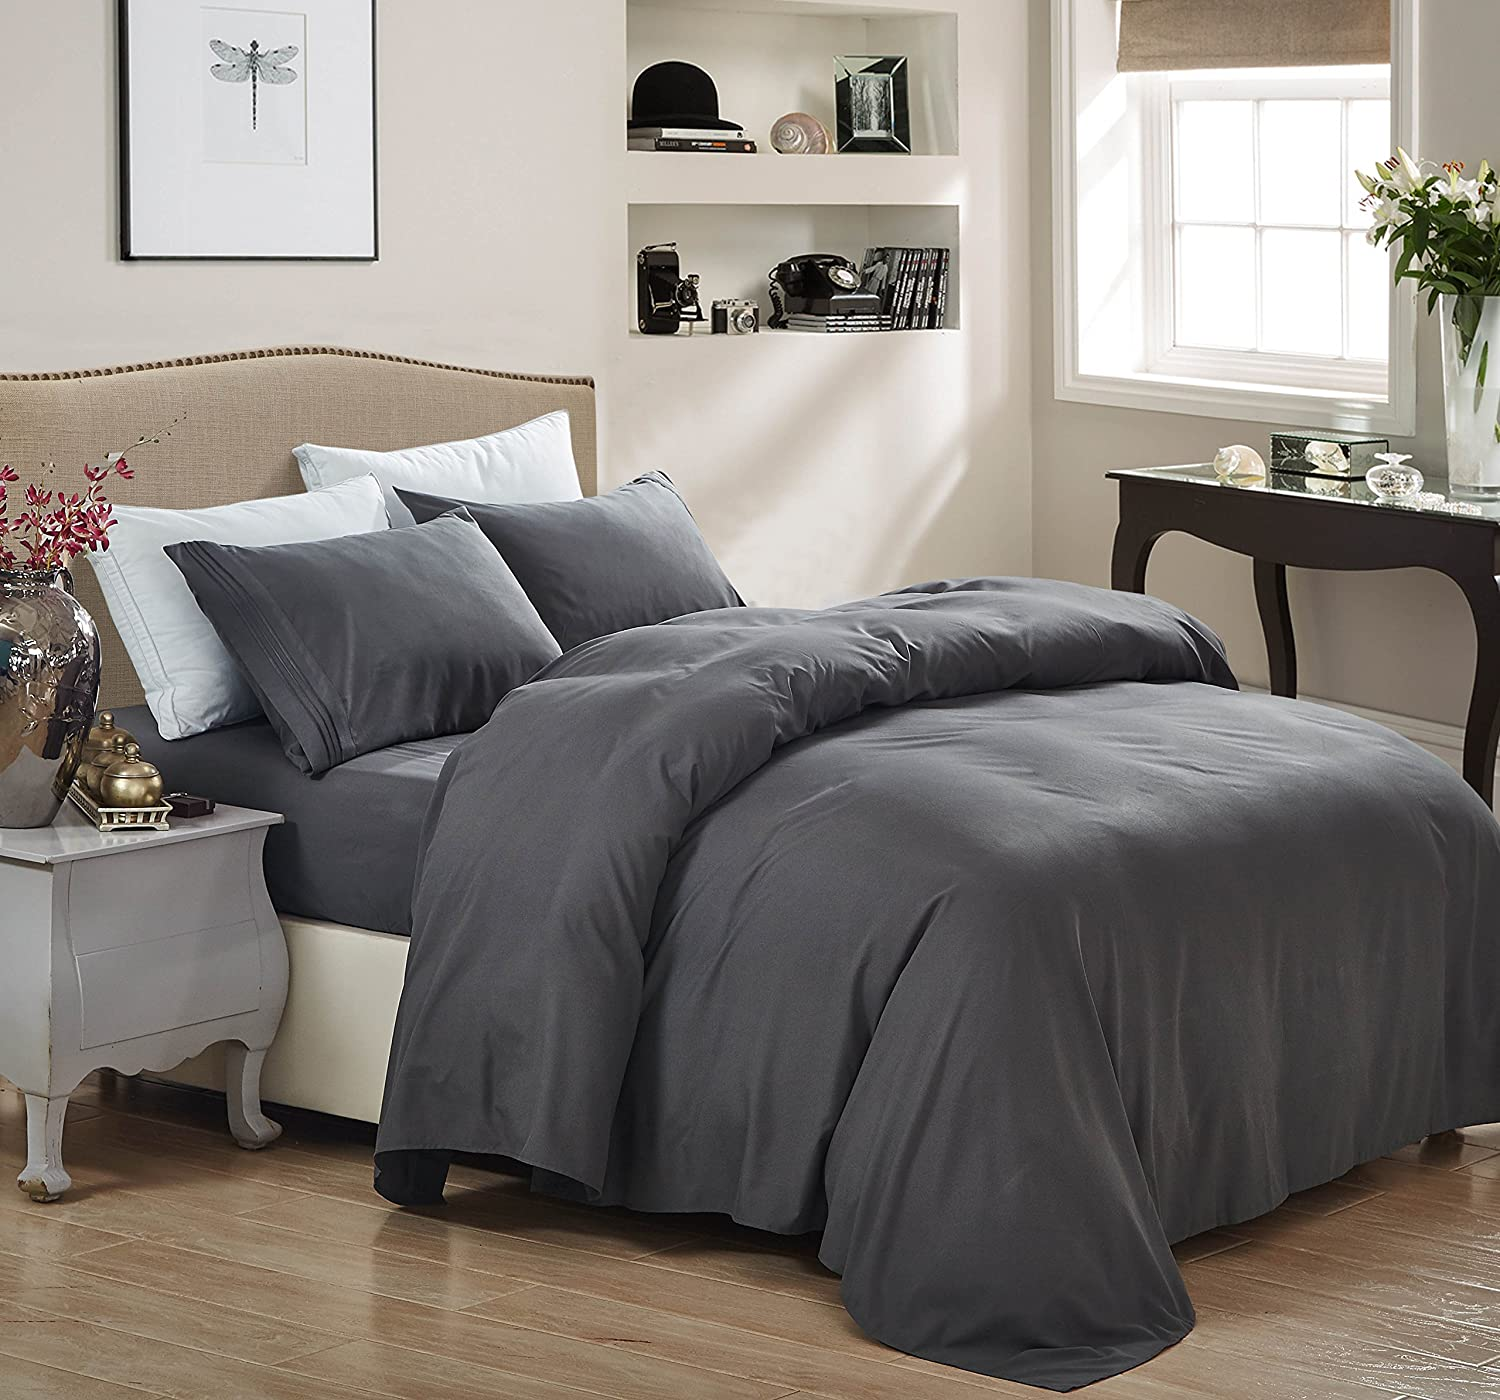 1800 Series Egyptian Collection 3 Line Microfiber 4 Piece Bed Sheet Set (Cal King, Grey